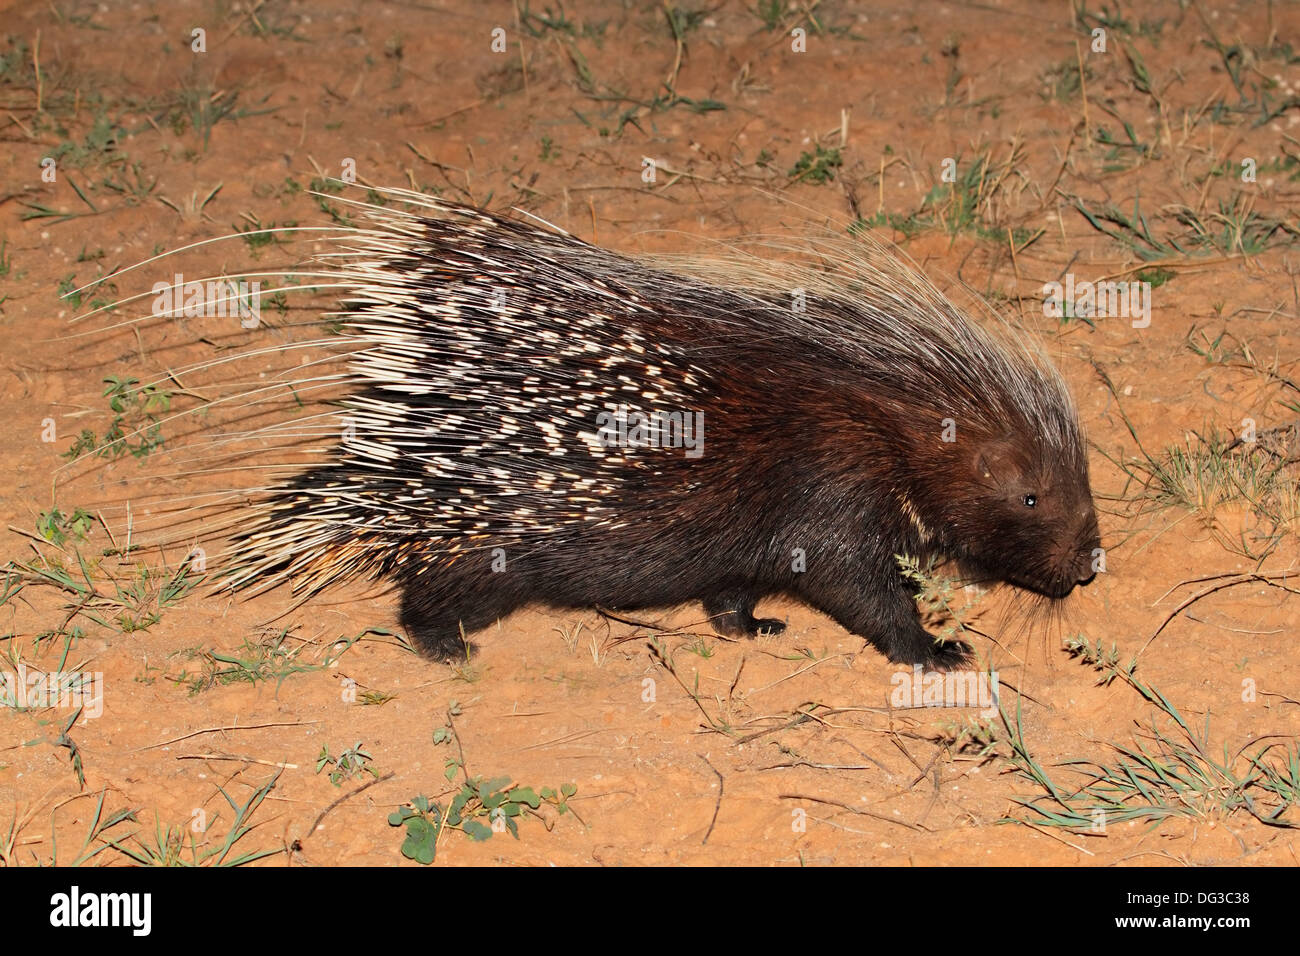 Cape porcupine (Hystrix africaeaustralis), South Africa Stock Photo